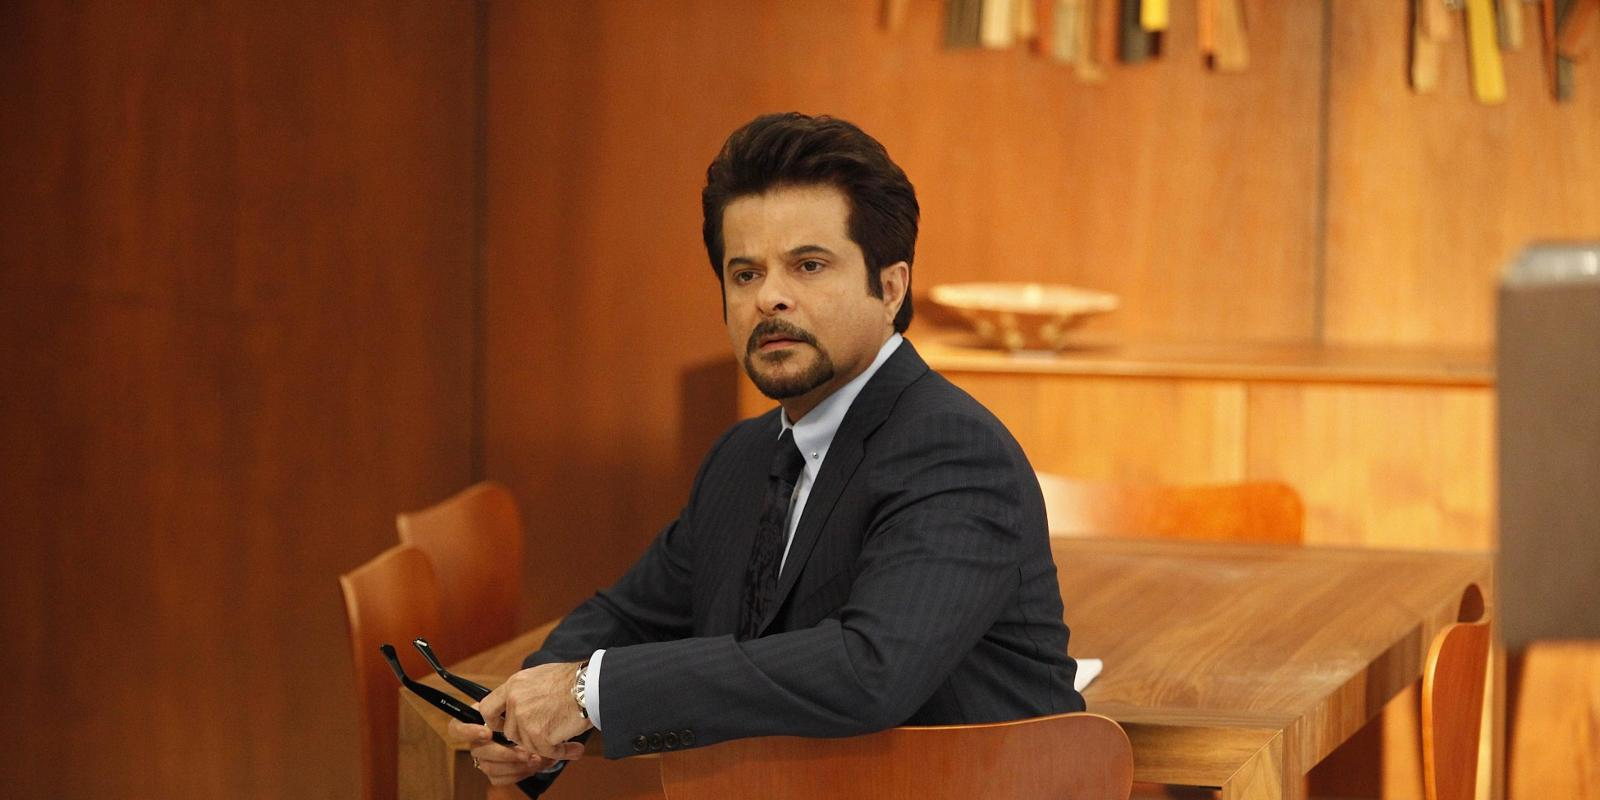 anil kapoor wallpapers high resolutins pic